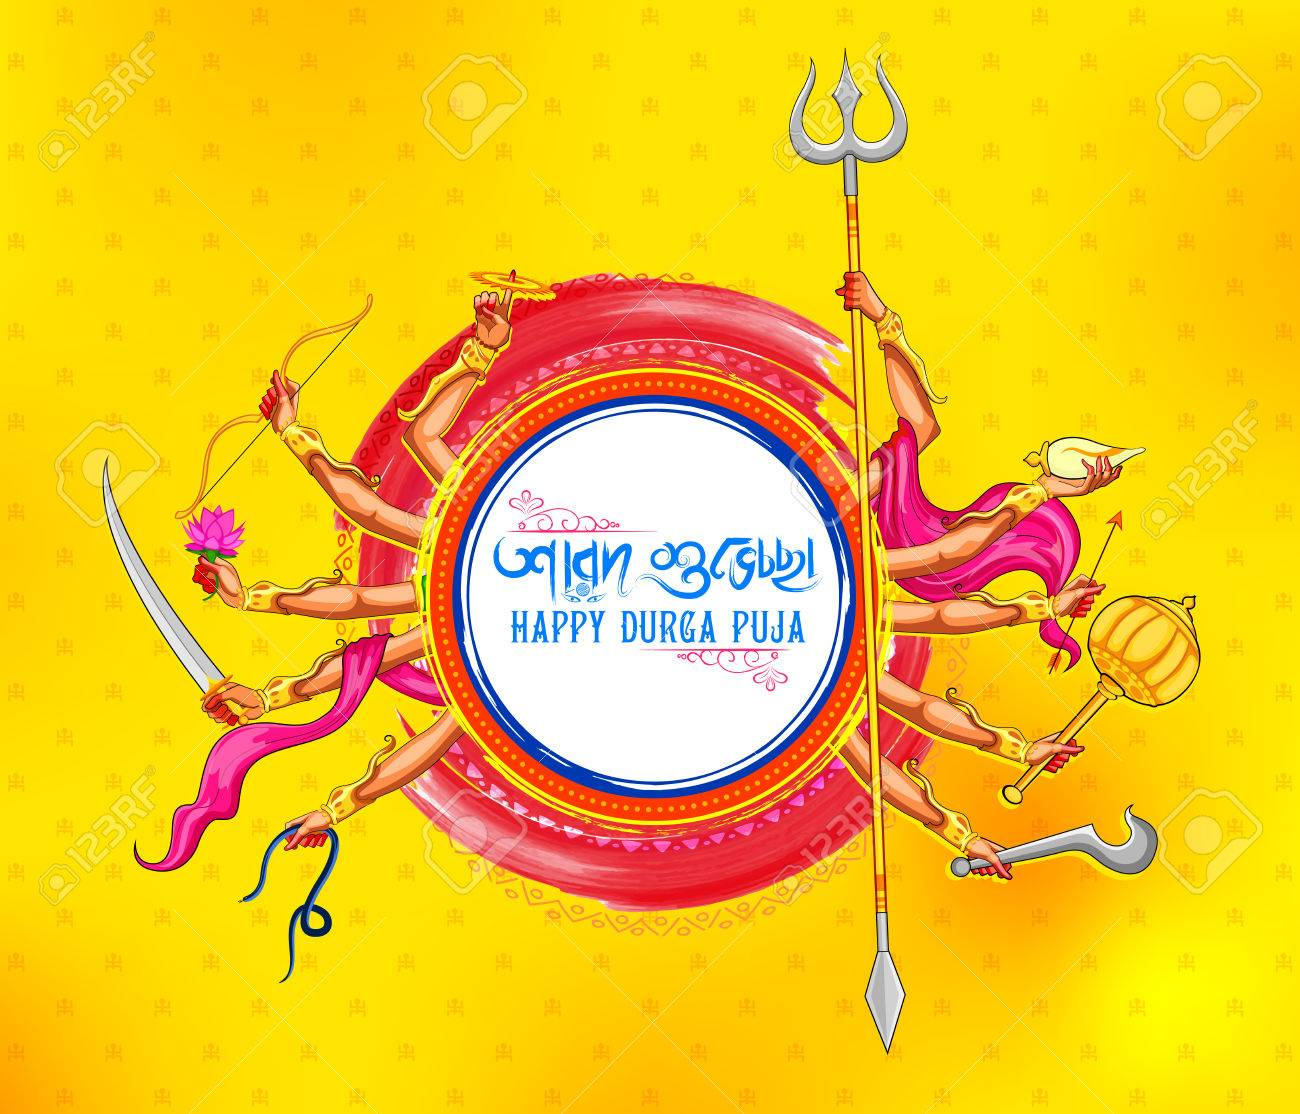 illustration of Goddess Durga in Happy Dussehra background with bengali text Sharod Shubhechha meaning Autumn greetings - 85536940